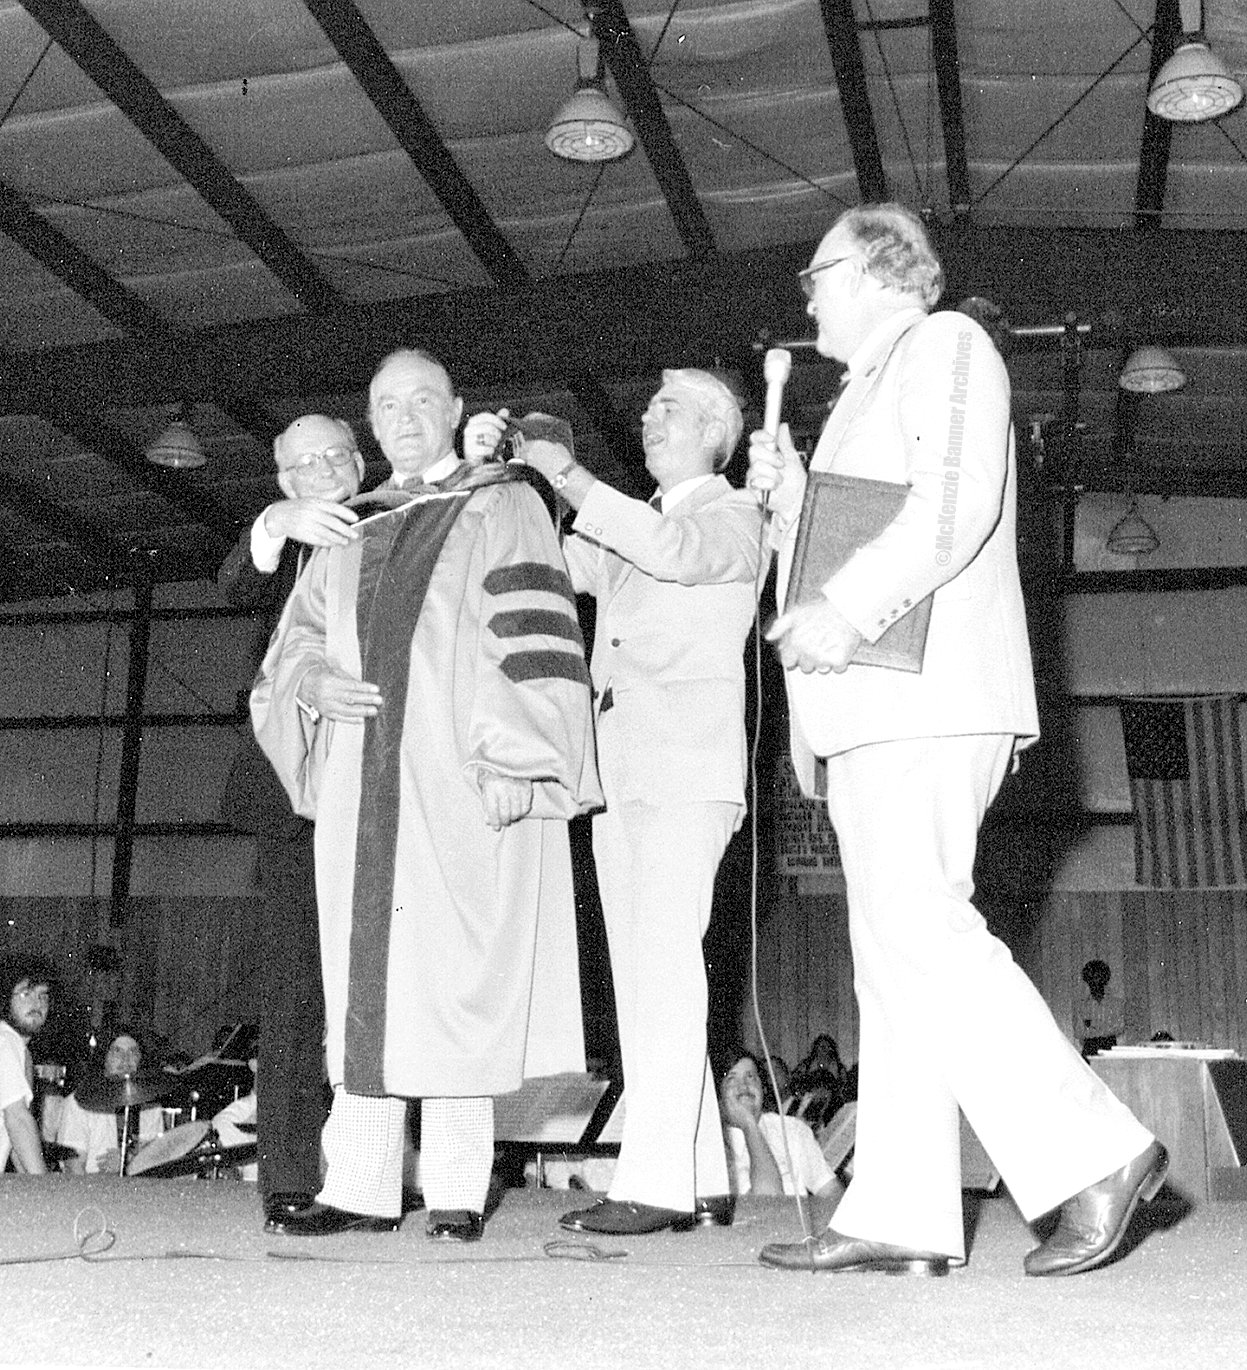 Bob Hope came to Bethel in May of 1975 to help raise money and support for the College. Pictured (L to R): Dr. Raymon Burroughs, Bob Hope, Rev. Jack Barker and Dr. Fred Bryson.